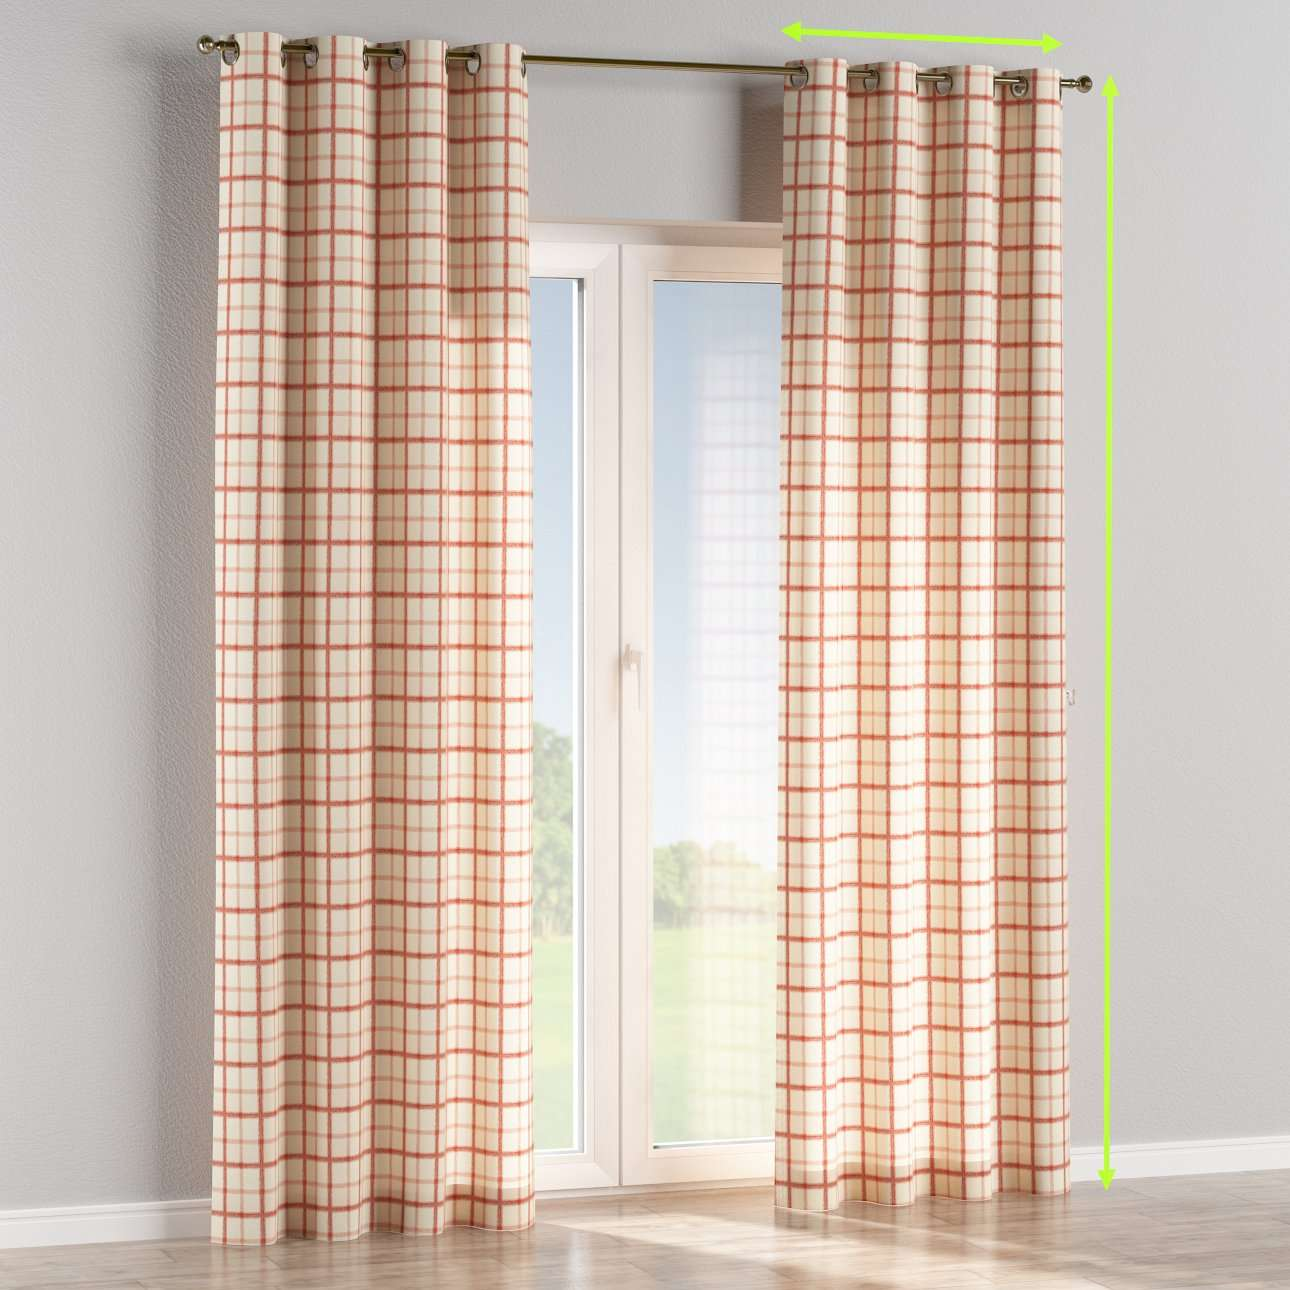 Eyelet curtains in collection Avinon, fabric: 131-15